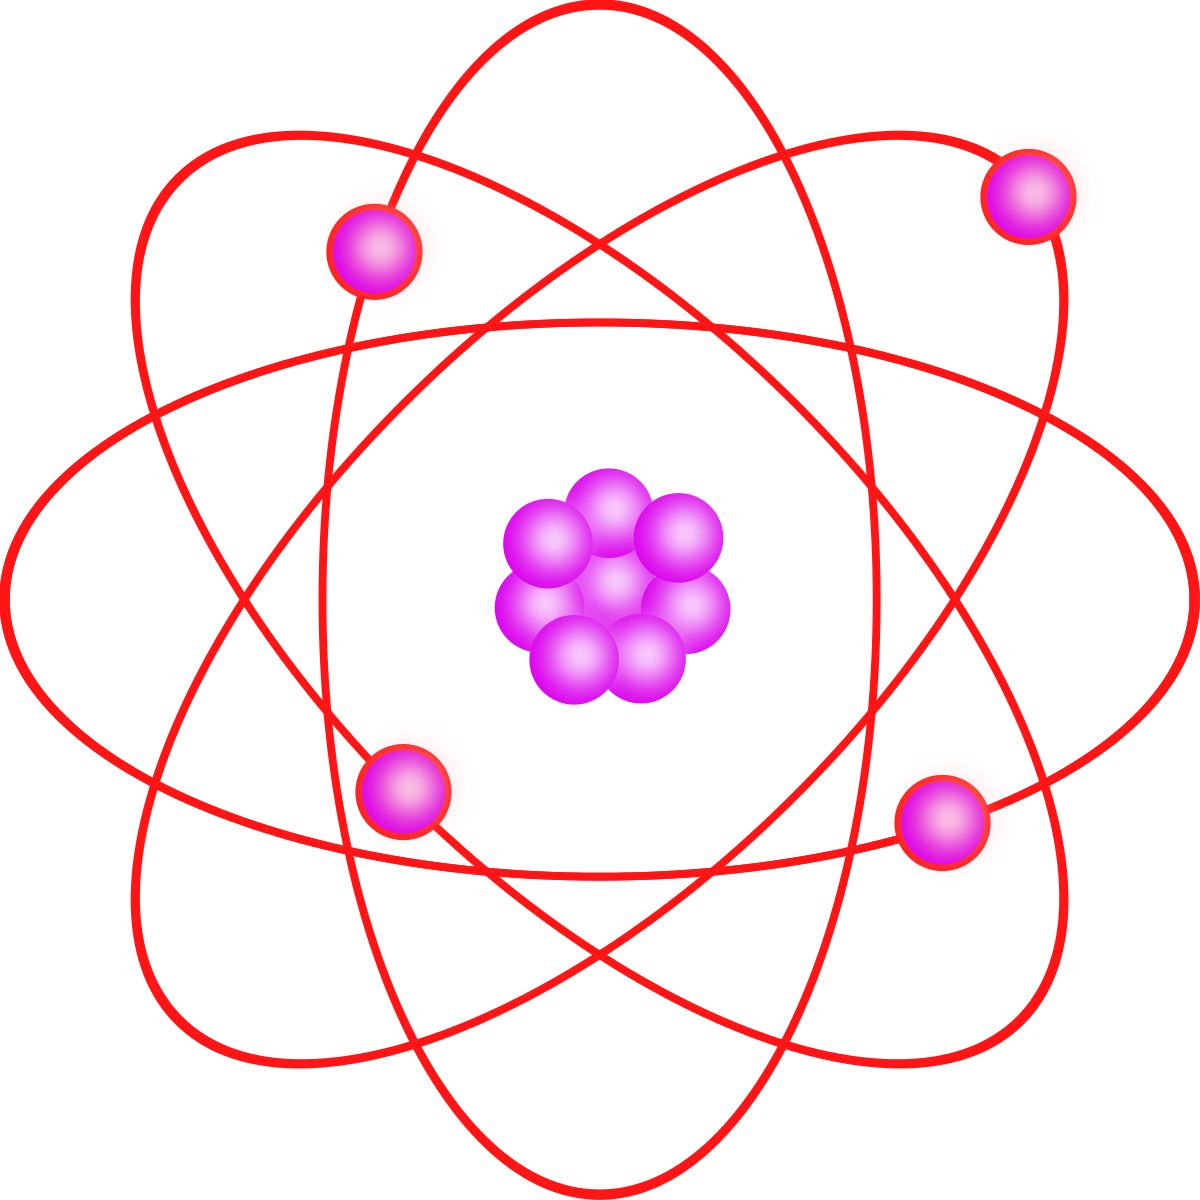 CHEMISTRY: TOPIC 12 ATOMIC STRUCTURE